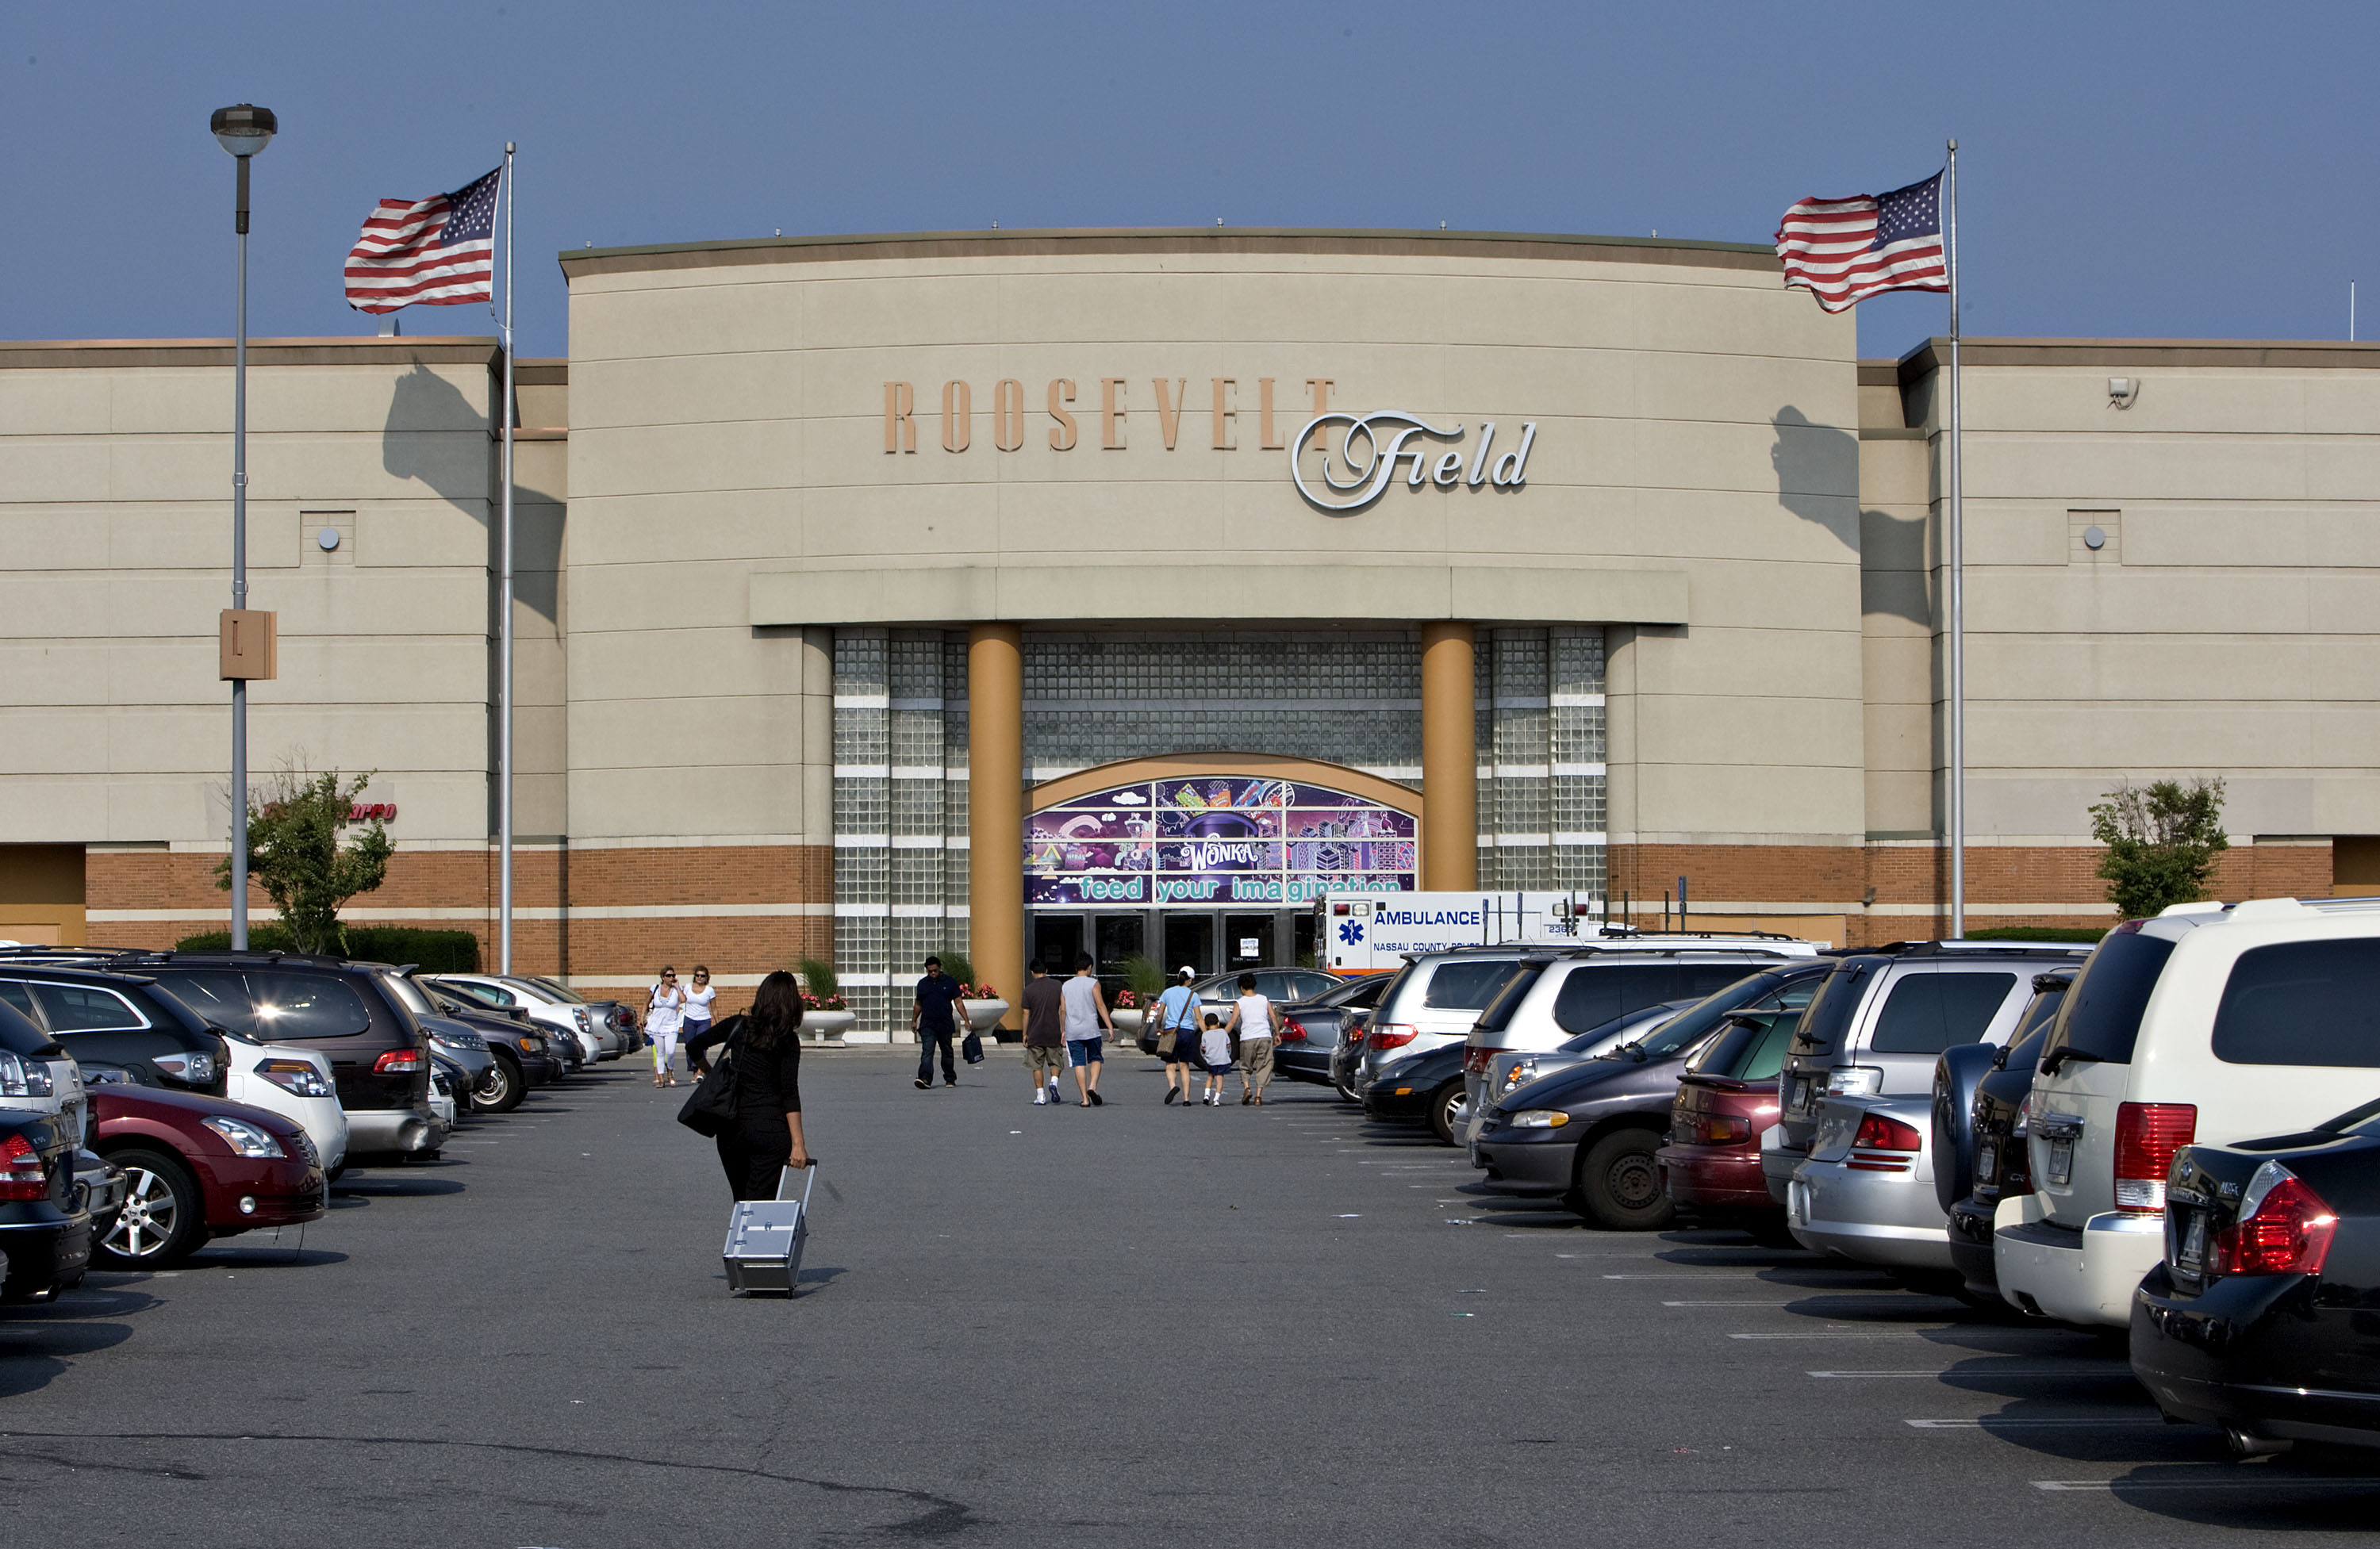 Shoppers enter Roosevelt Field Mall in Garden City, New York